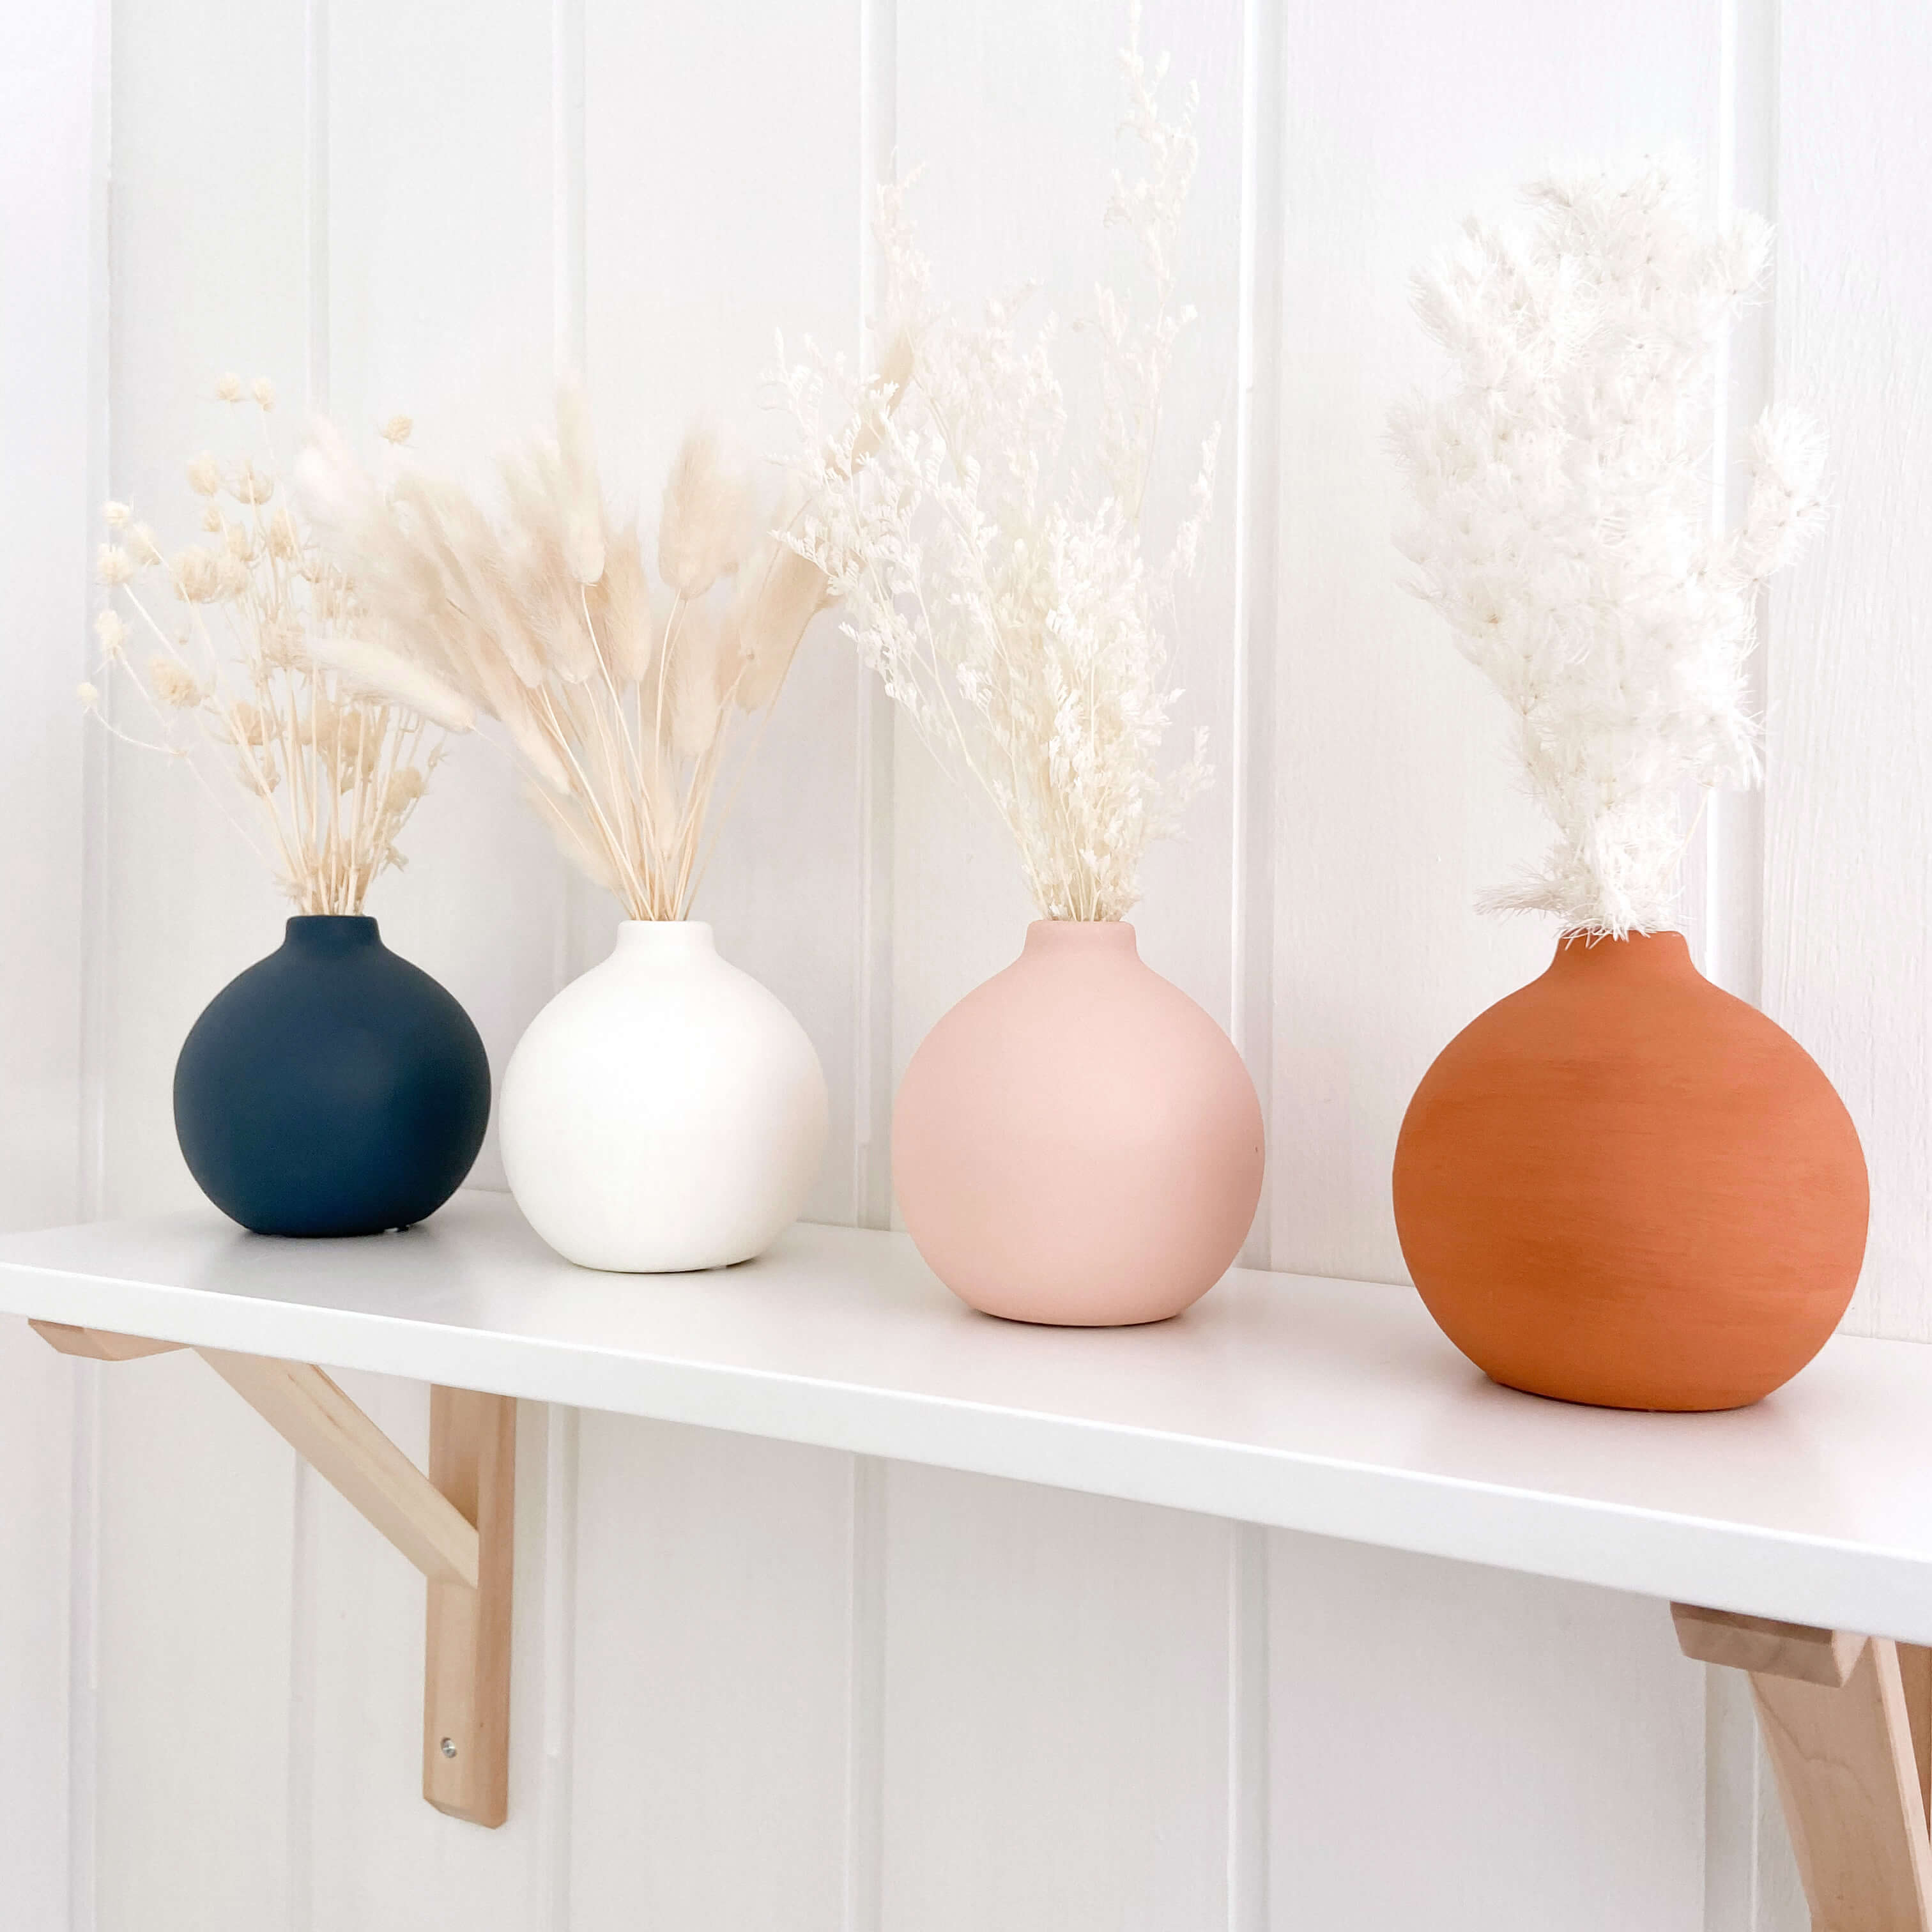 4 boho vases sitting on a white nursery shelf. The vases are small and round and navy, pink, white and terracotta. They have preserved flowers in them